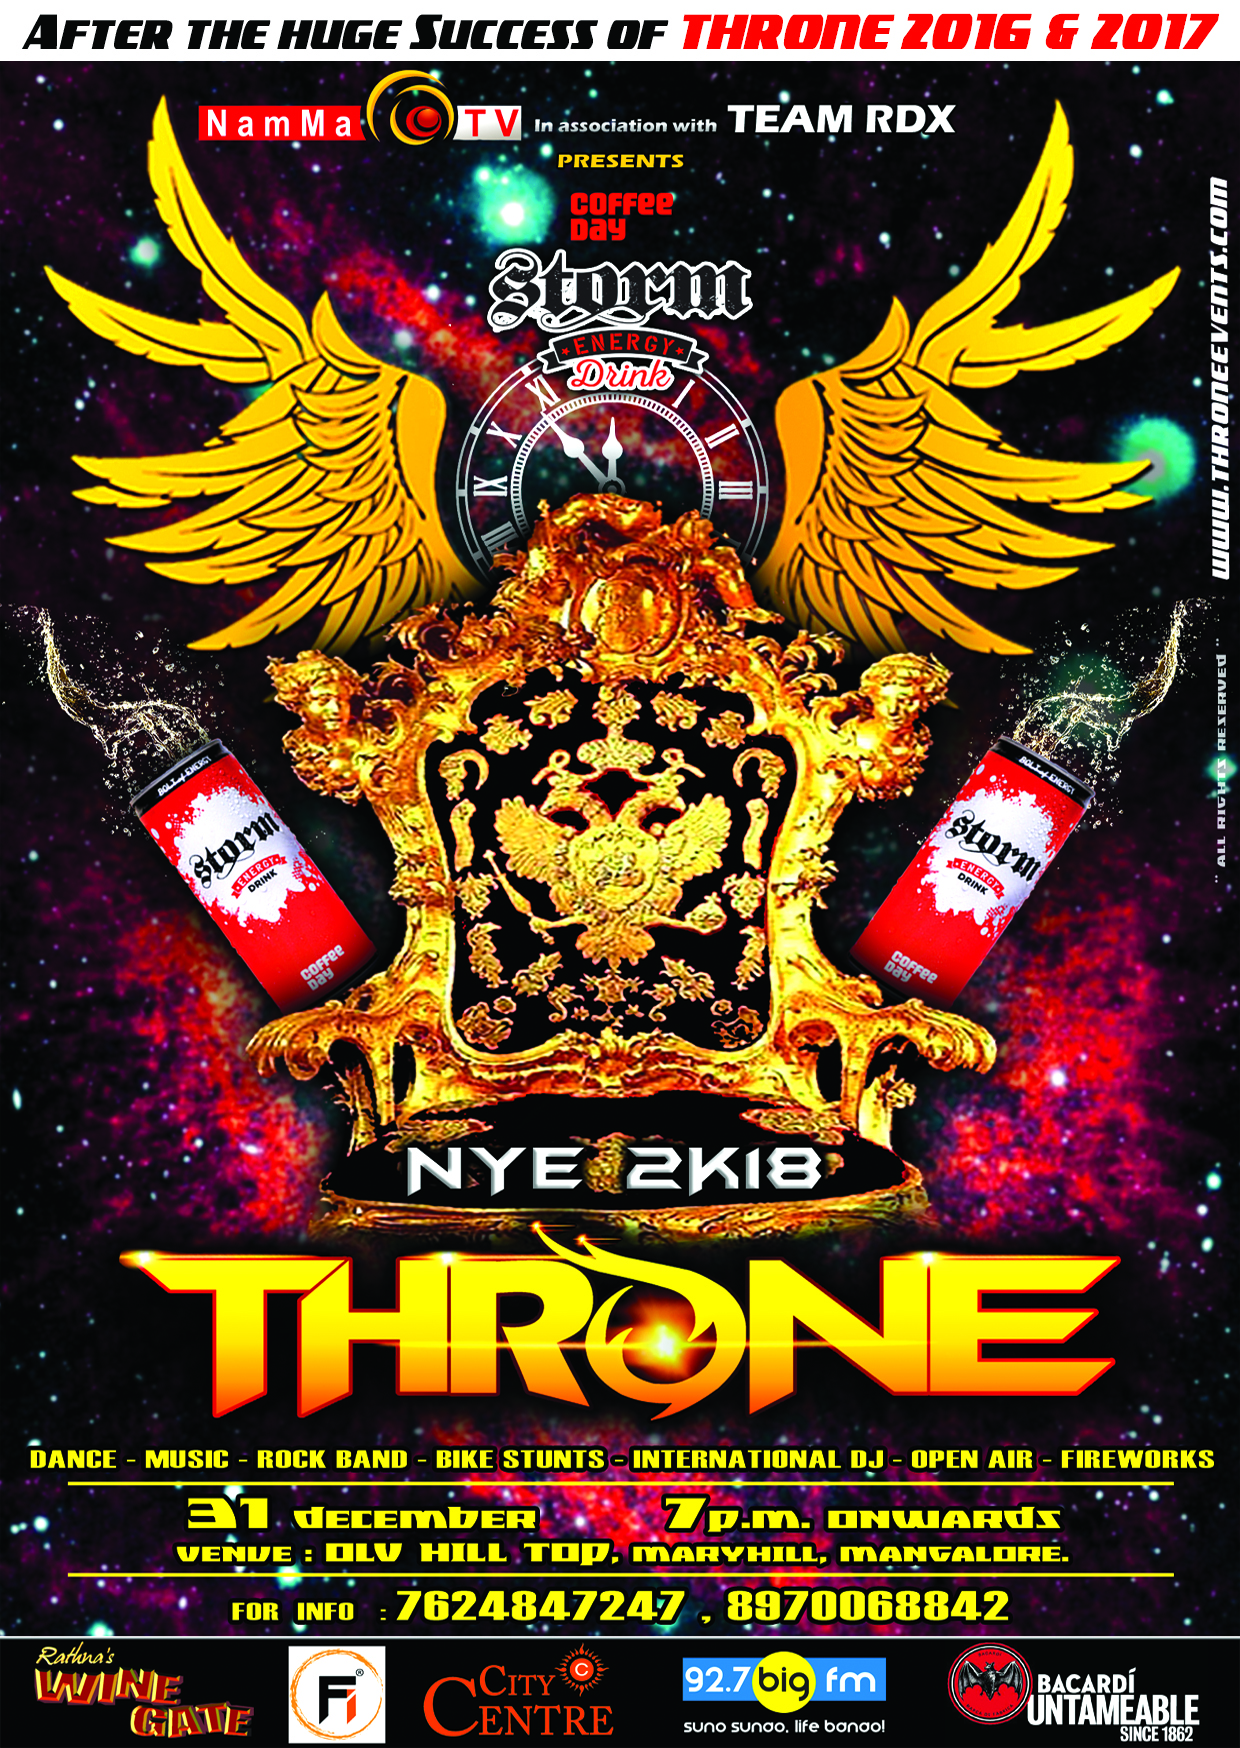 NEW YEAR PARTY 2018 - THRONE